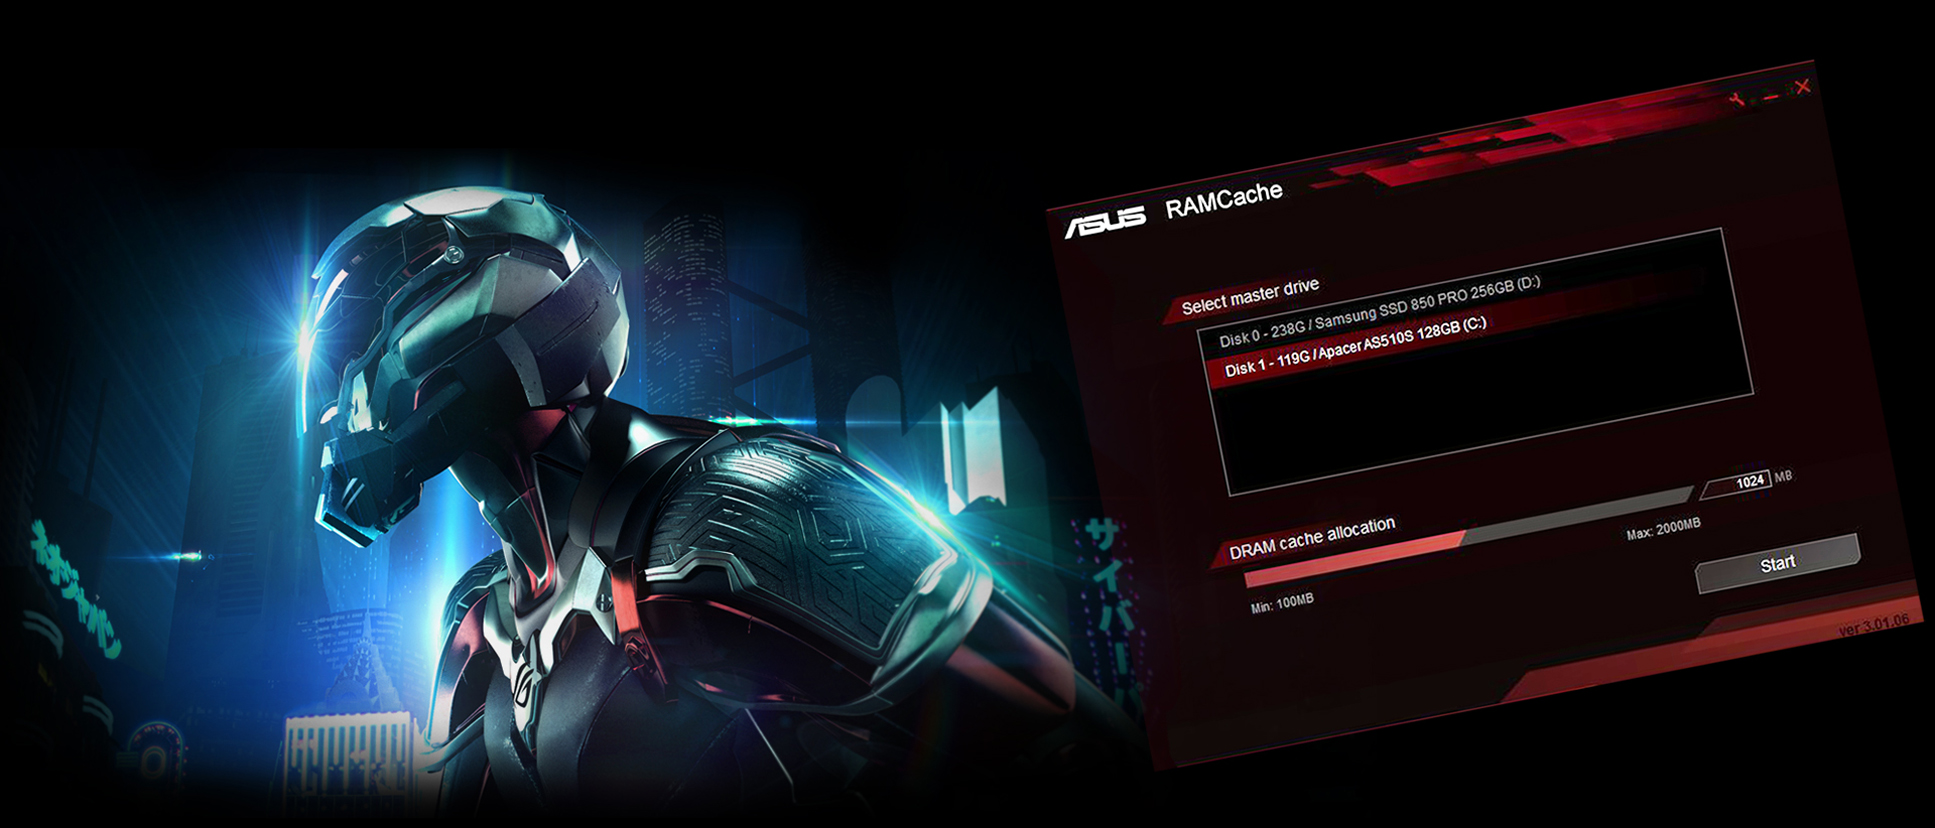 Rog Rampage V Edition 10 Republic Of Gamers Asus Usa Topspeed Controls Commands N A Game Manual Music Video Ramcache Turns Milliseconds Into Microseconds To Boost Load Times Stratospheric Levels And Minimizes Risk Data Loss Course Its